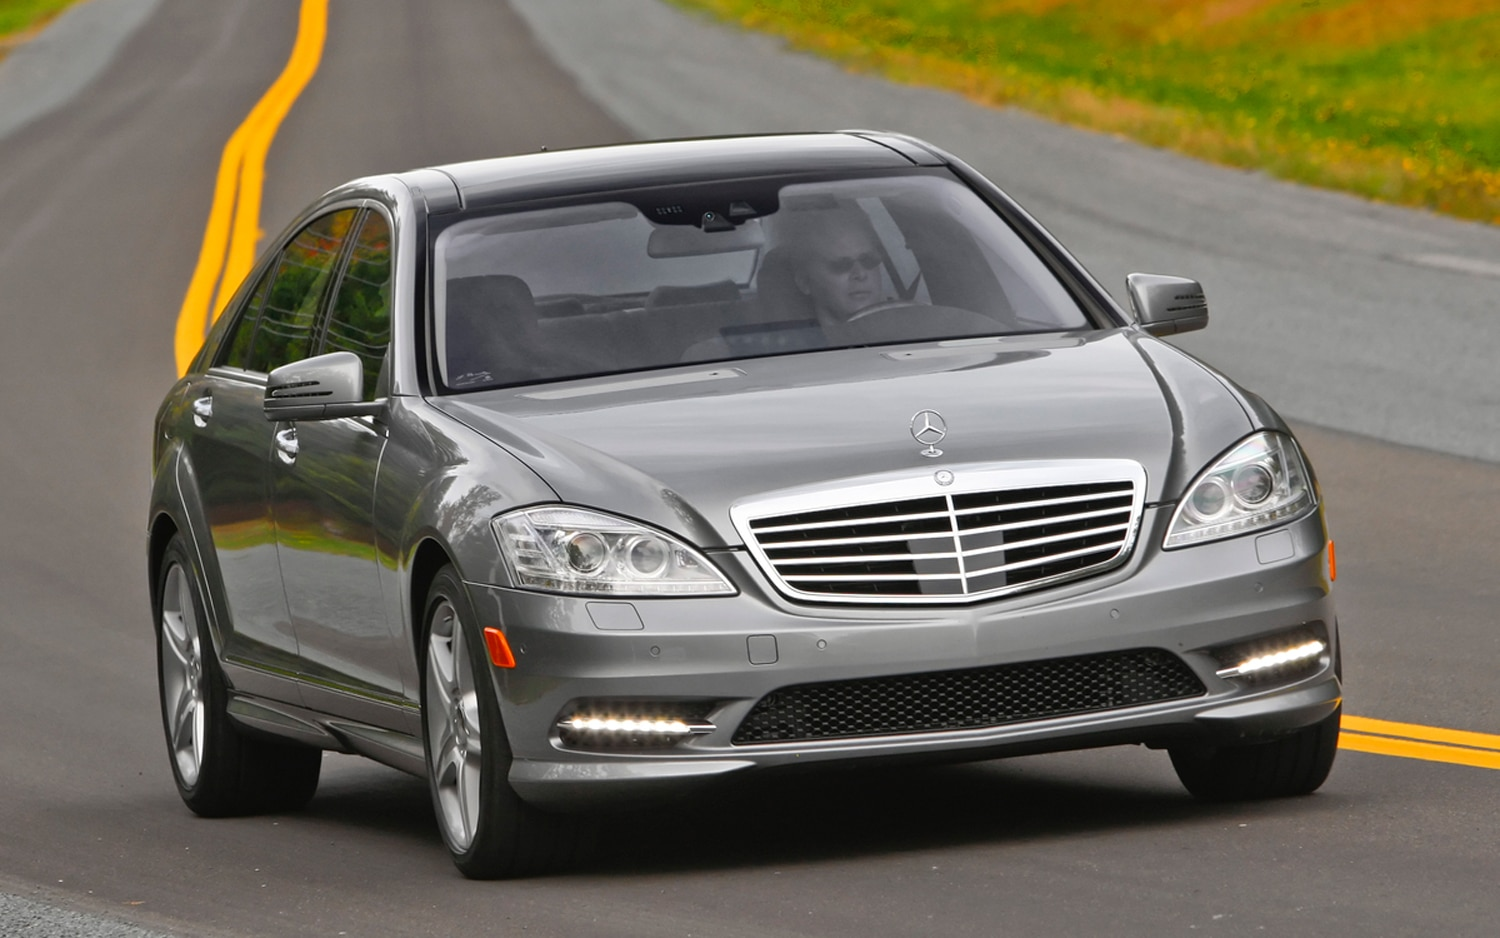 car used city sale queens class available s brooklyn staten ny jersey benz island in sdn mercedes for kings